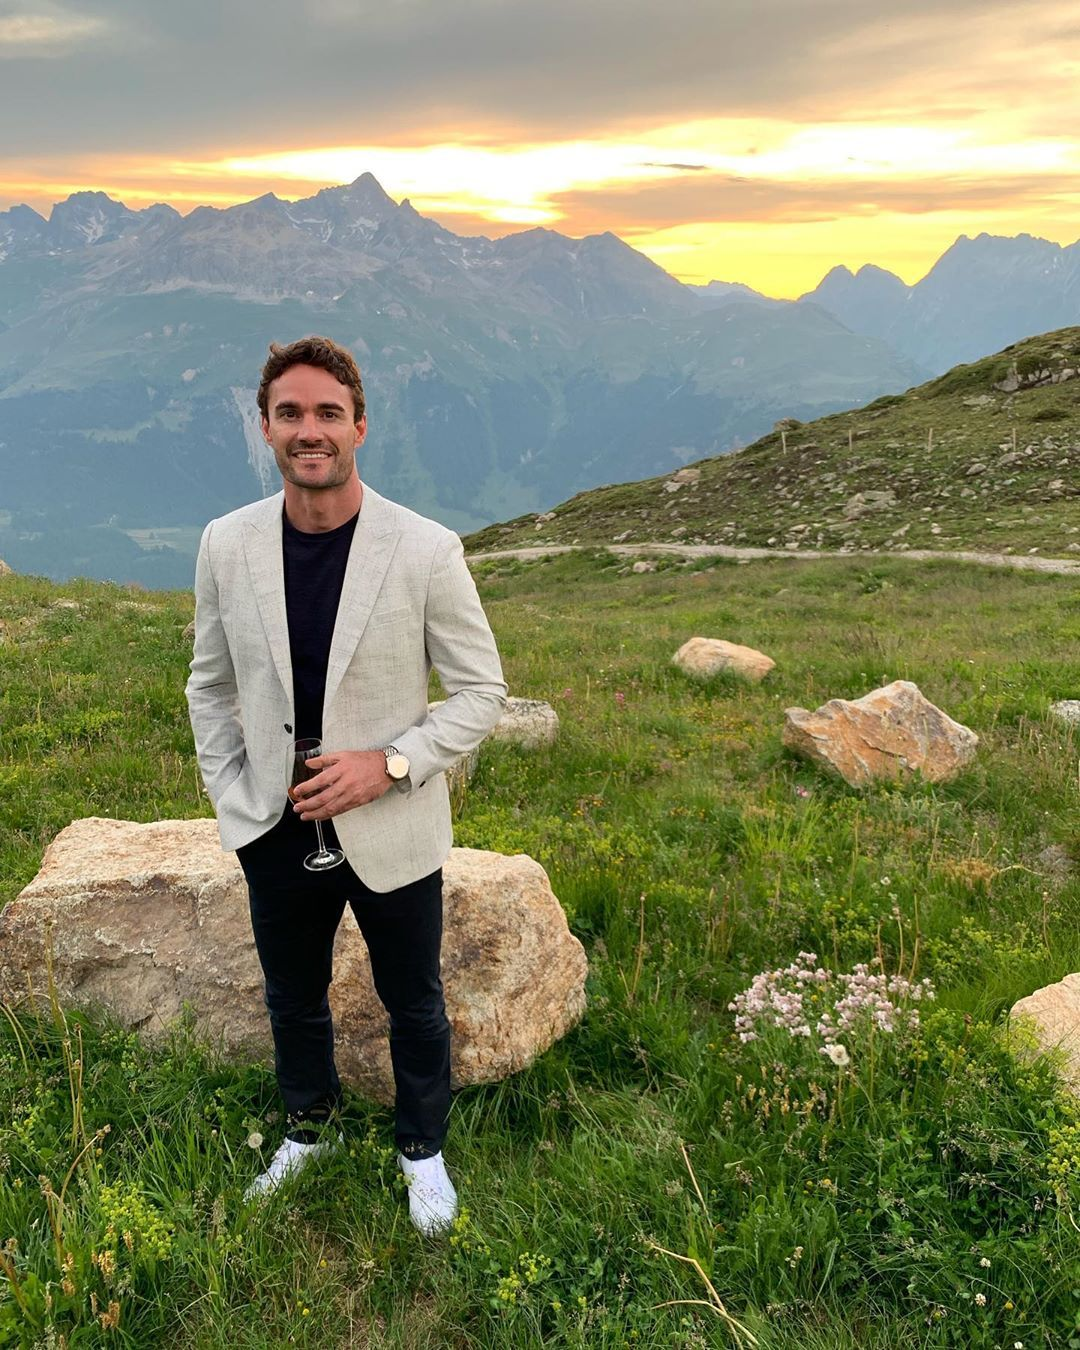 Image may contain: Celebrity X Factor cast, X Factor, celebrity, cast, contestants, lineup, Thom Evans, Ben Foden, Levi Davis, rugby, players, ITV, start date, Simon Cowell, Vegetation, Plant, Wilderness, Overcoat, Jacket, Blazer, Coat, Land, Nature, Human, Person, Outdoors, Slope, Apparel, Clothing